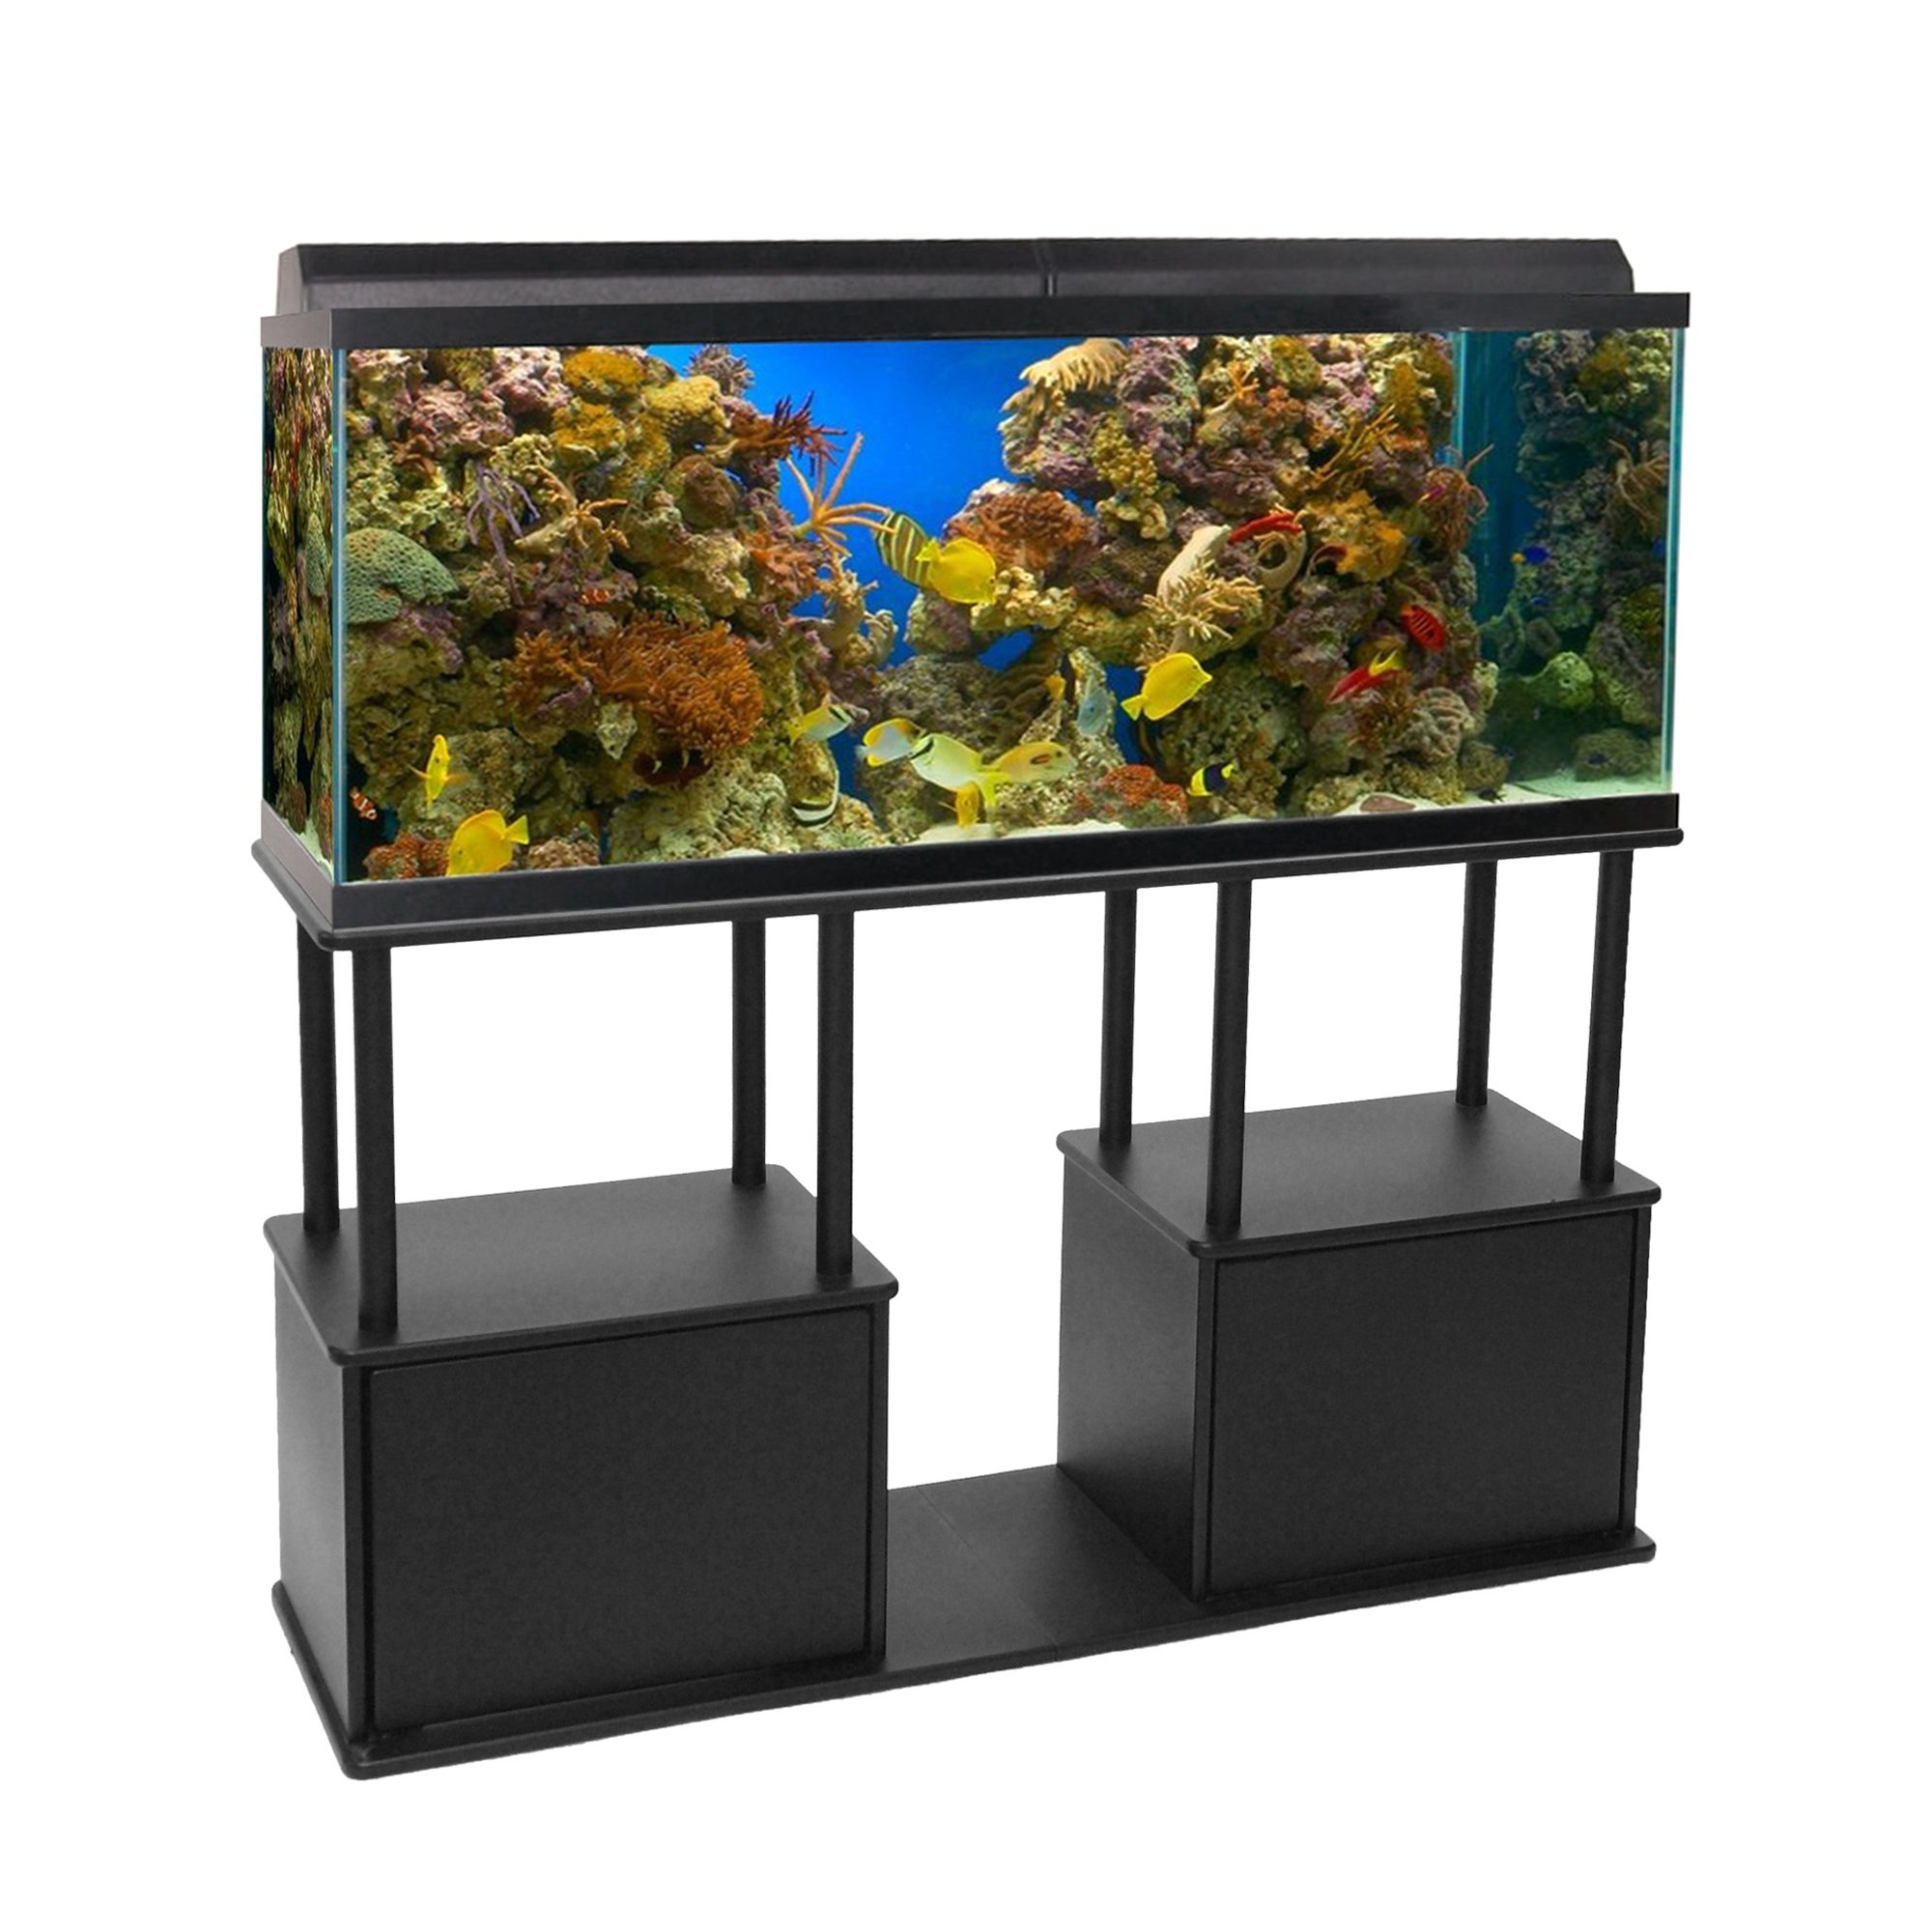 Aquatic Fundamentals 55 Gallon Aquarium Stand with Shelf  sc 1 st  Petco & Aquarium Stands Canopies u0026 Cabinets | Petco Store